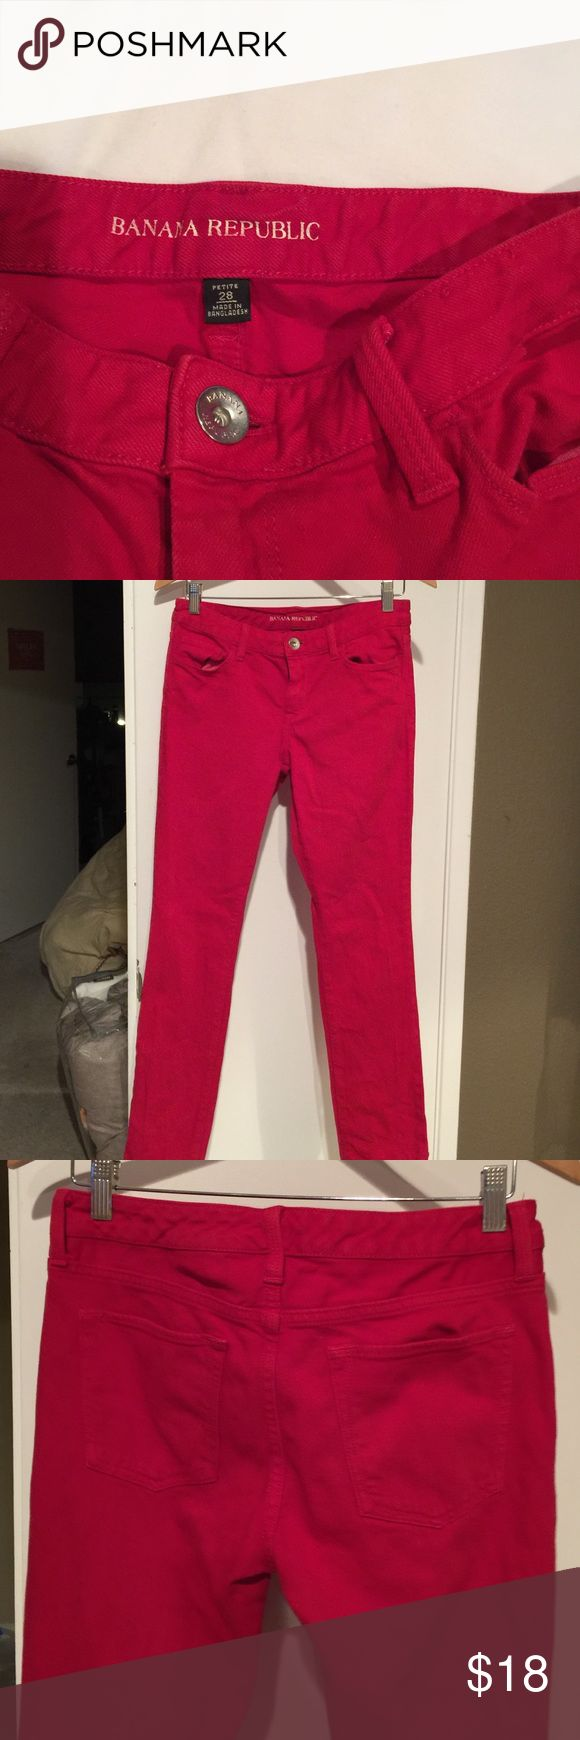 Banana Republic Red 28P Slim Jeans Gently used, very good condition, 28 petite jeans. Flattering and comfortable. Banana Republic Jeans Straight Leg